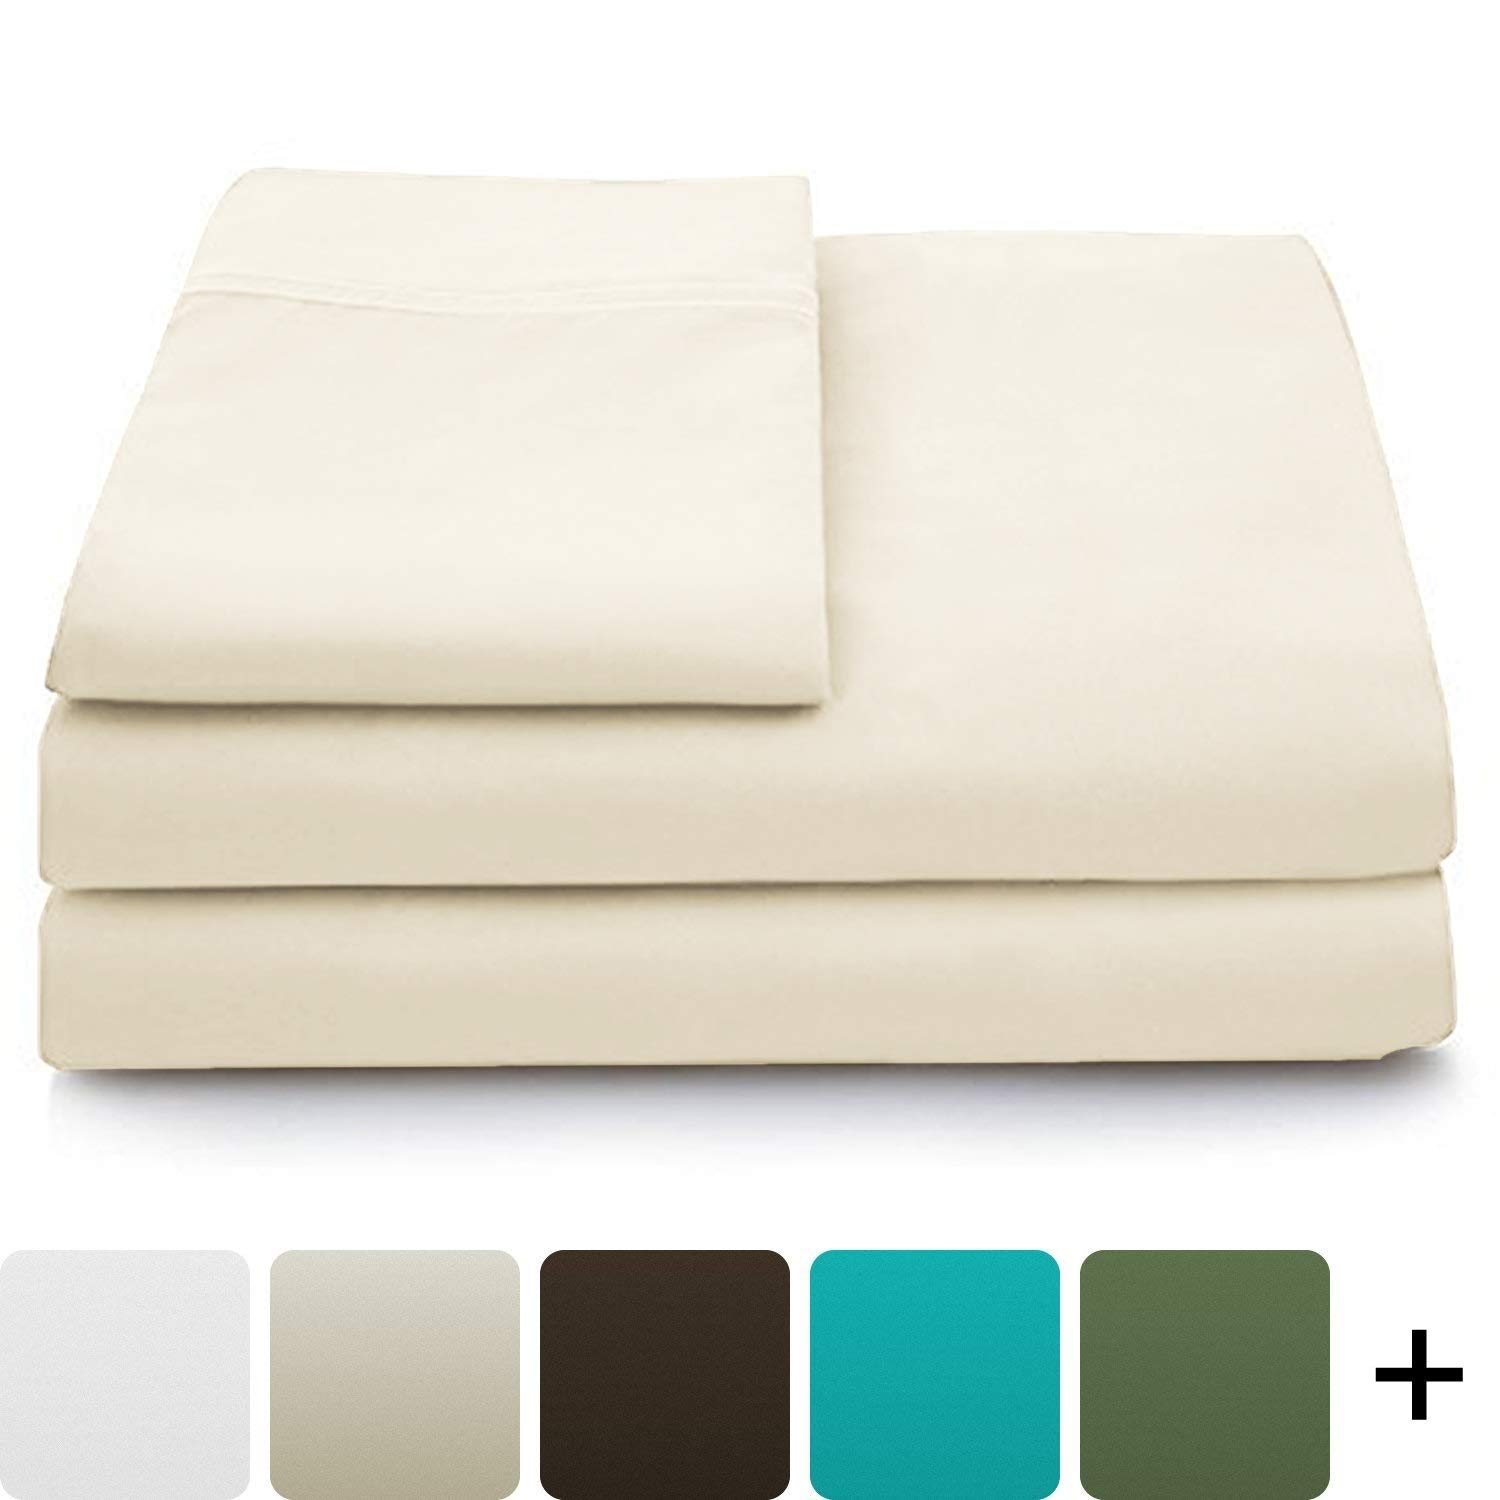 Cosy House Collection Luxury Bamboo Bed Sheet Set - Hypoallergenic Bedding Blend from Natural Bamboo Fiber - Resists Wrinkles - 4 Piece - 1 Fitted Sheet, 1 Flat, 2 Pillowcases - Cal King, Cream